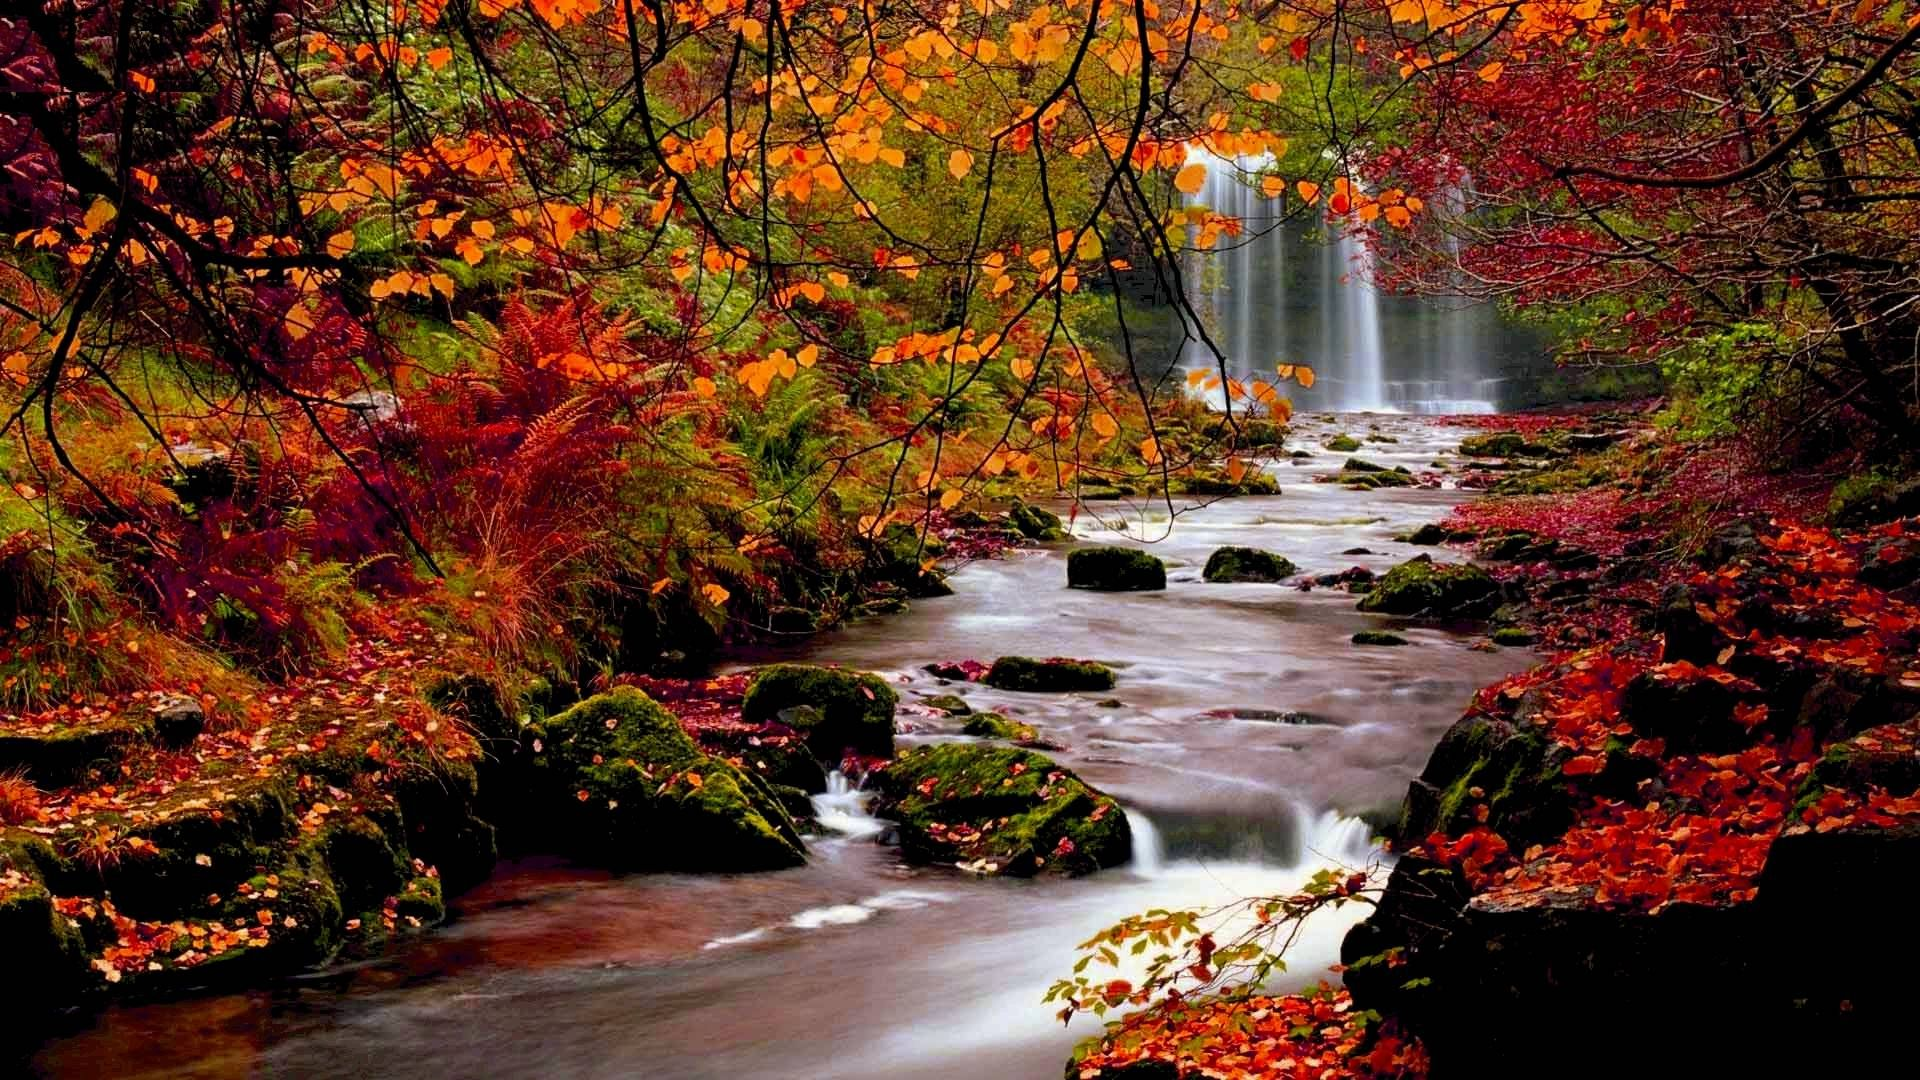 Seriously Fall Is My All Time Favorite Season From The Beautiful Colors Of The Leaves To The Yumminess Autumn Landscape Desktop Wallpaper Fall Autumn Scenery